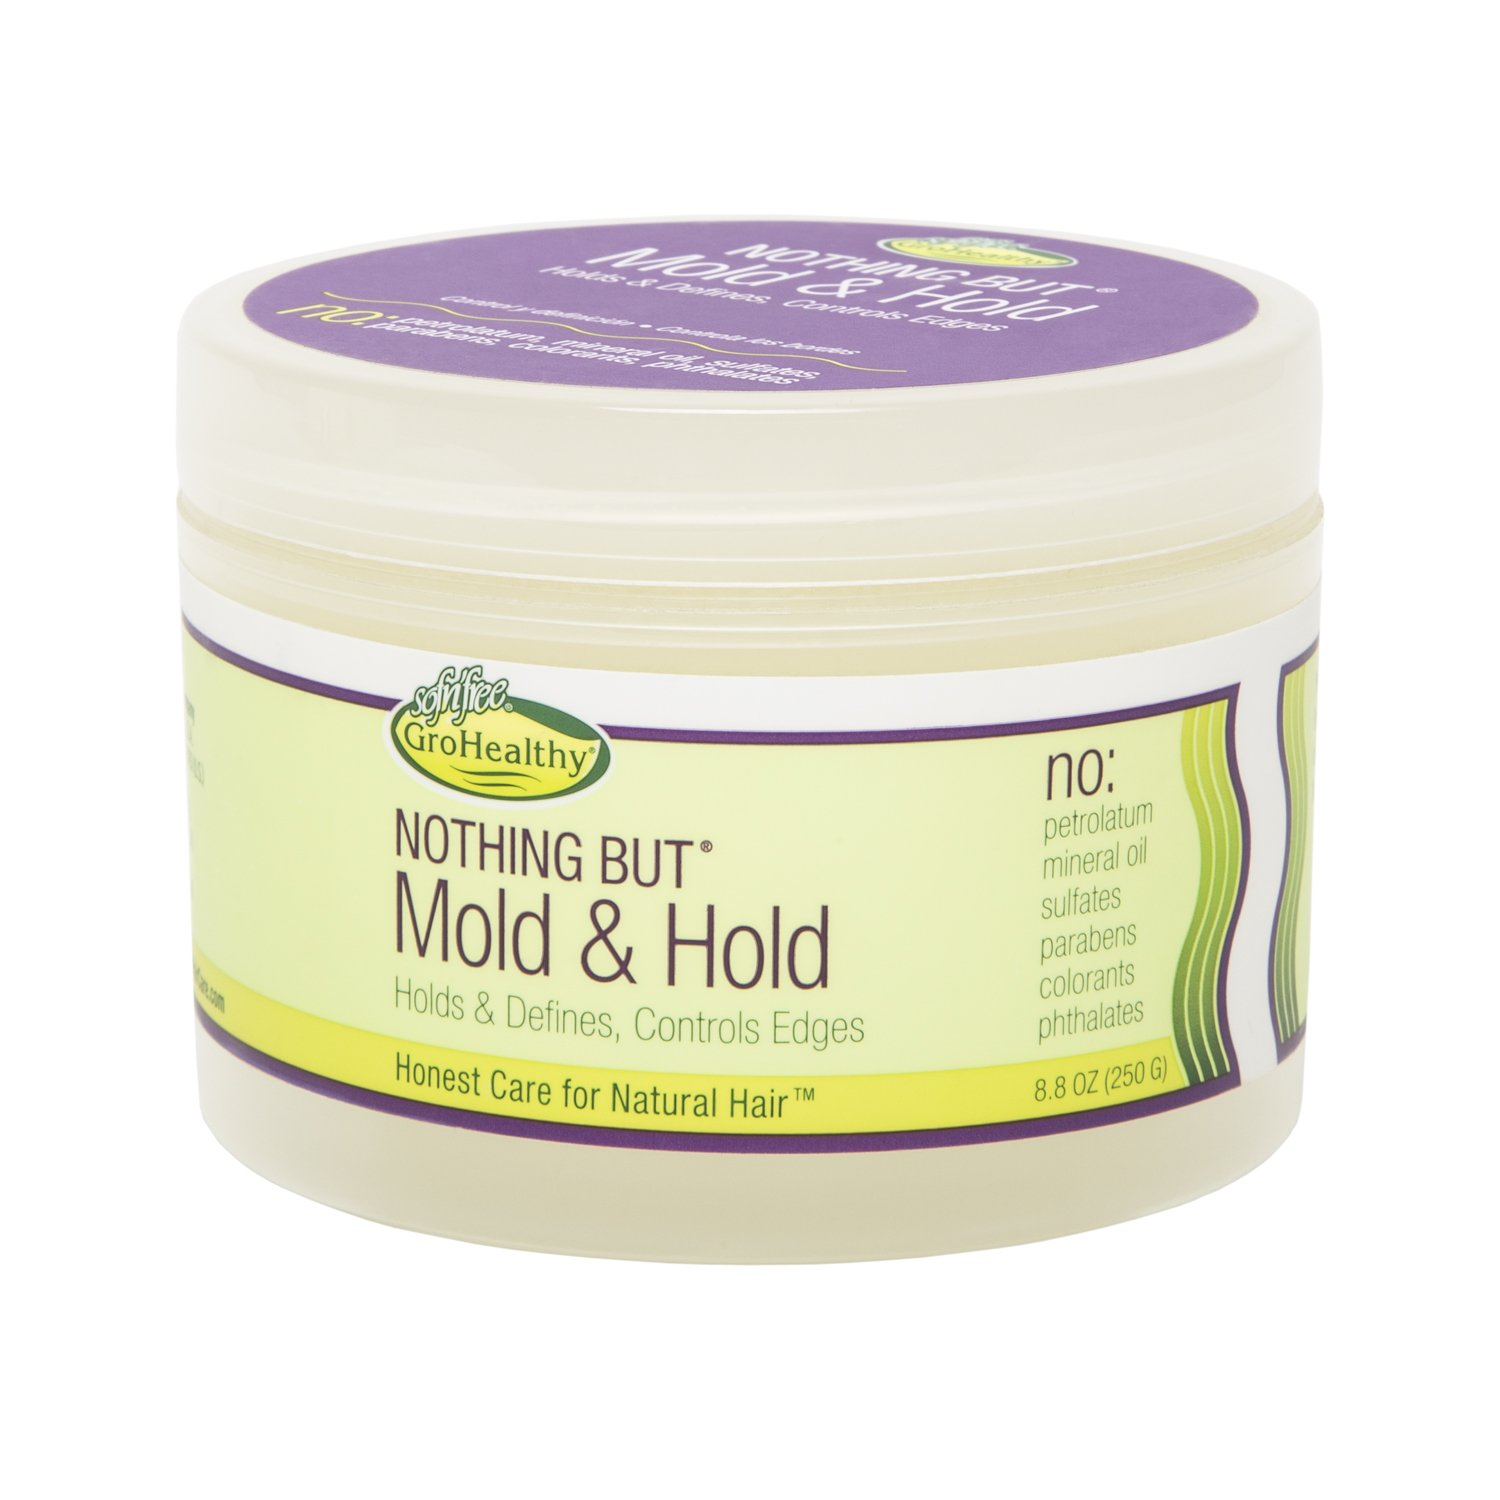 Nothing but Mold & Hold Wax, 8.8 Ounce